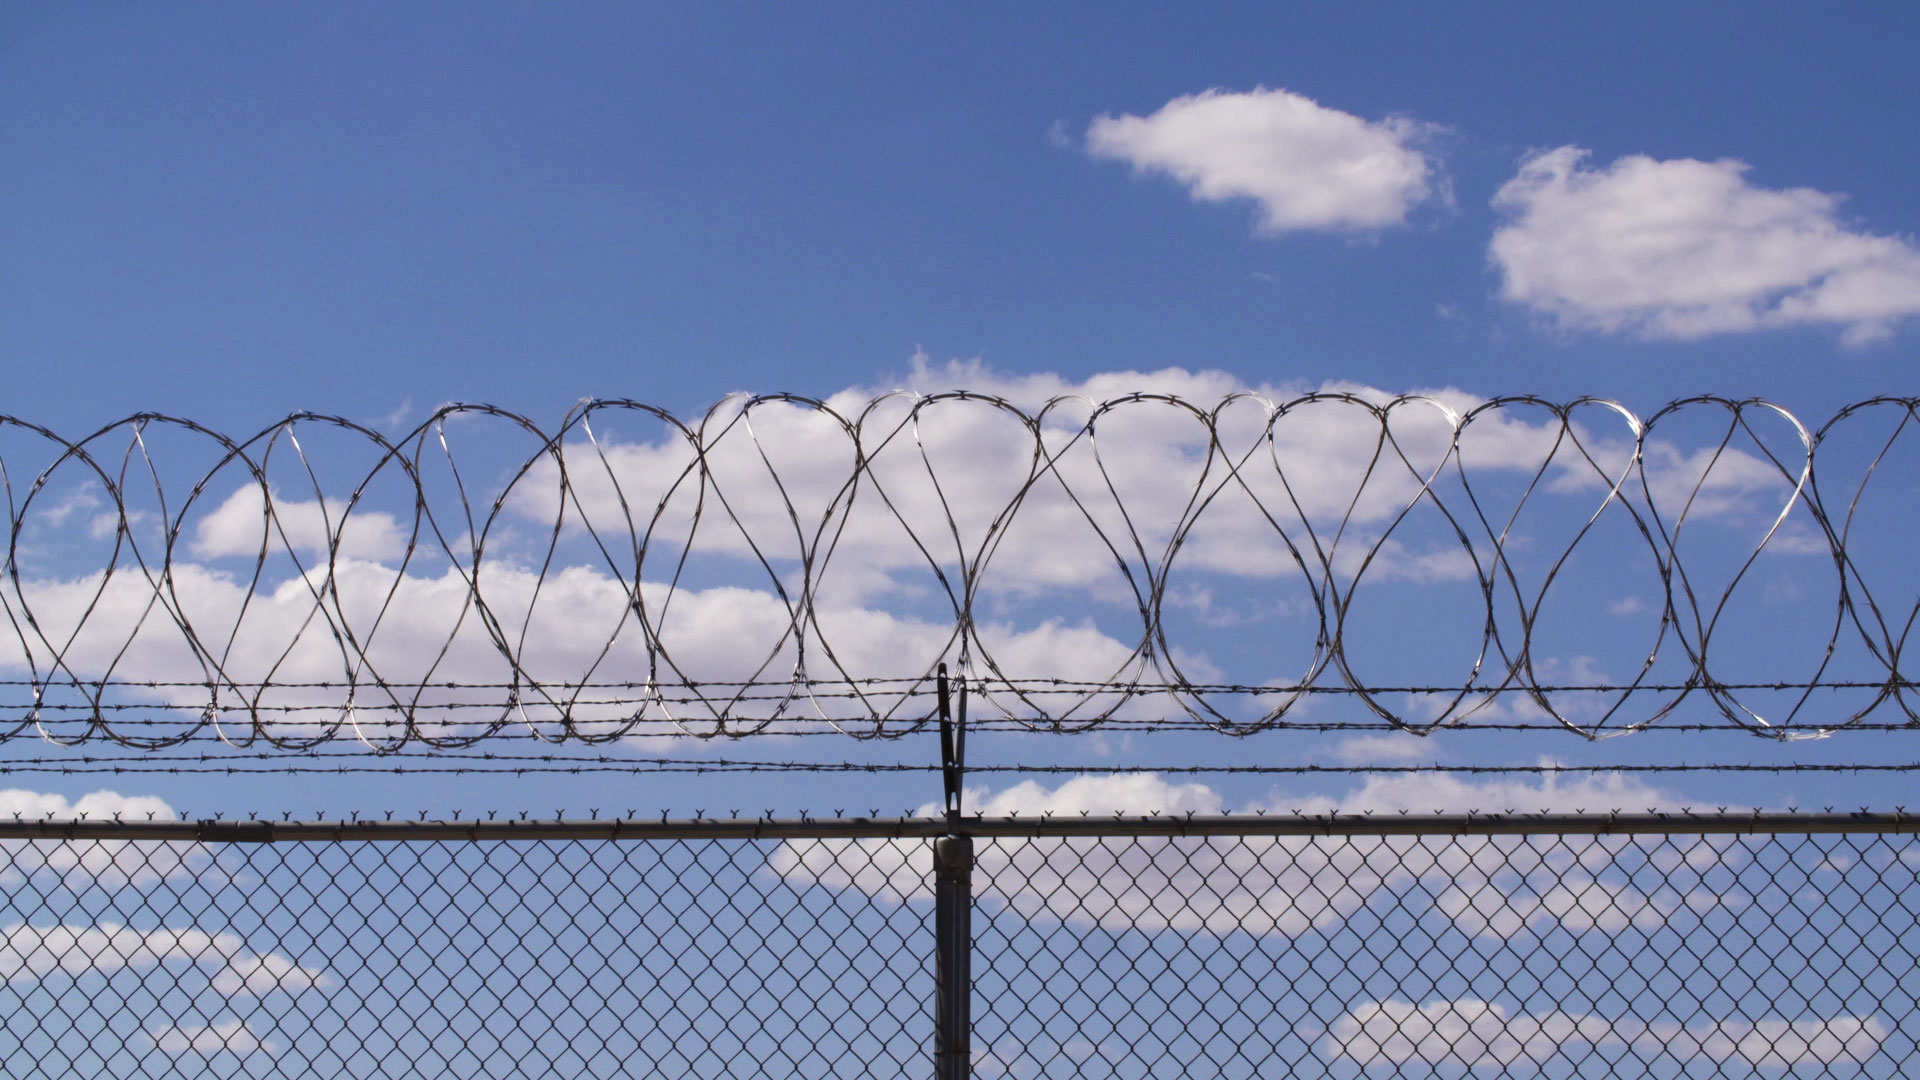 File image of razor wire lining a fence at a state prison in Arizona.